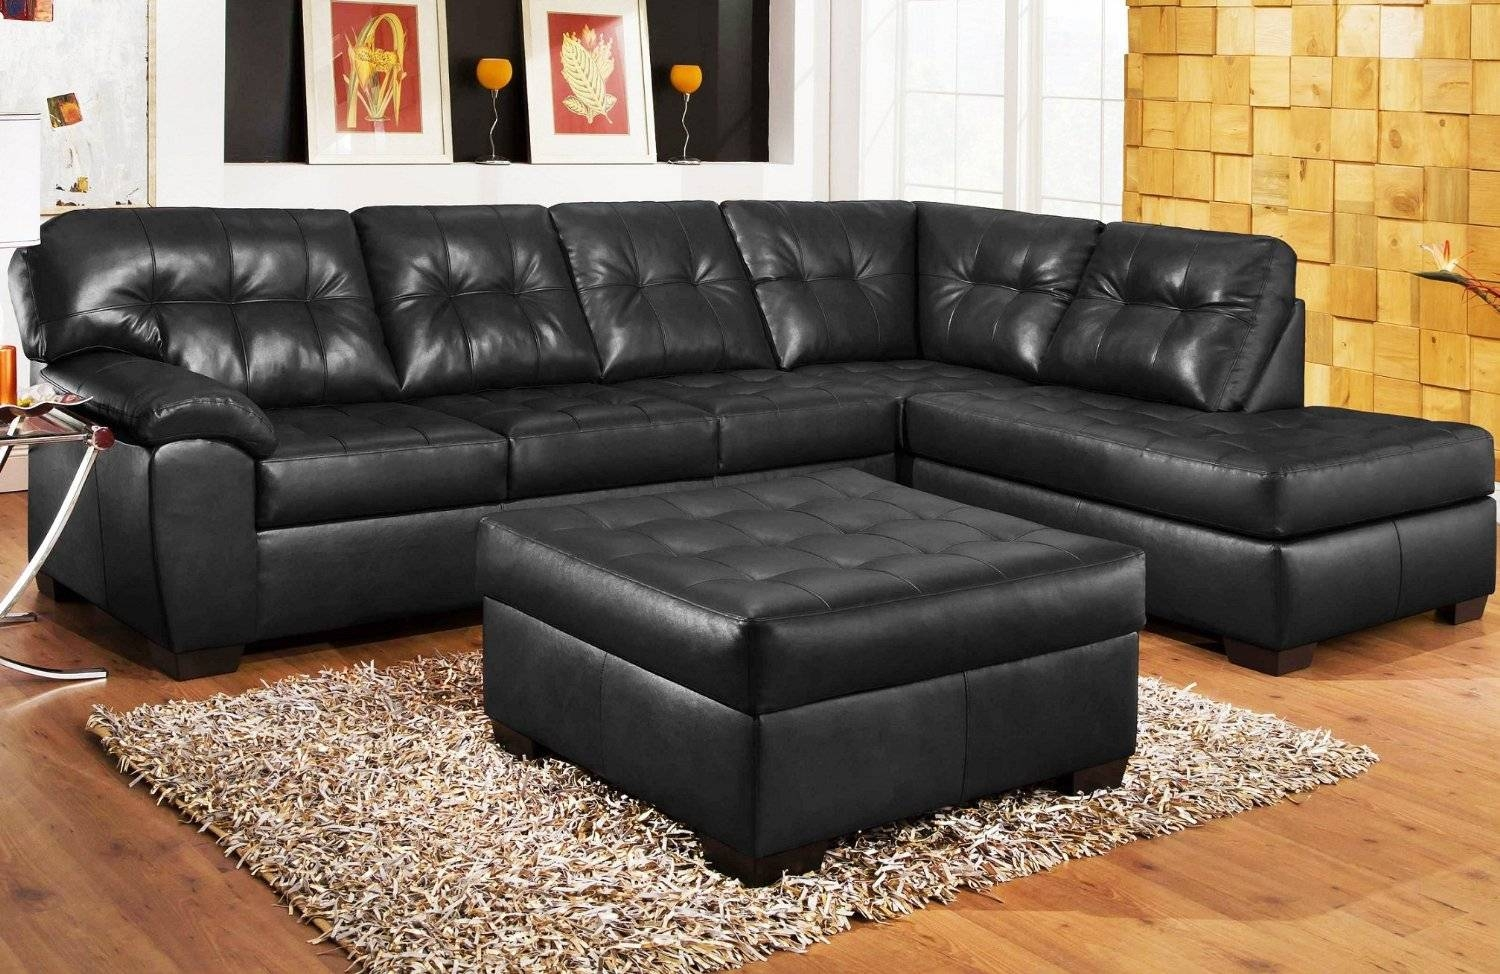 Decor Rooms To Go Cindy Crawford For Classy Living Room Design pertaining to Cindy Crawford : rooms to go cindy crawford sectional - Sectionals, Sofas & Couches